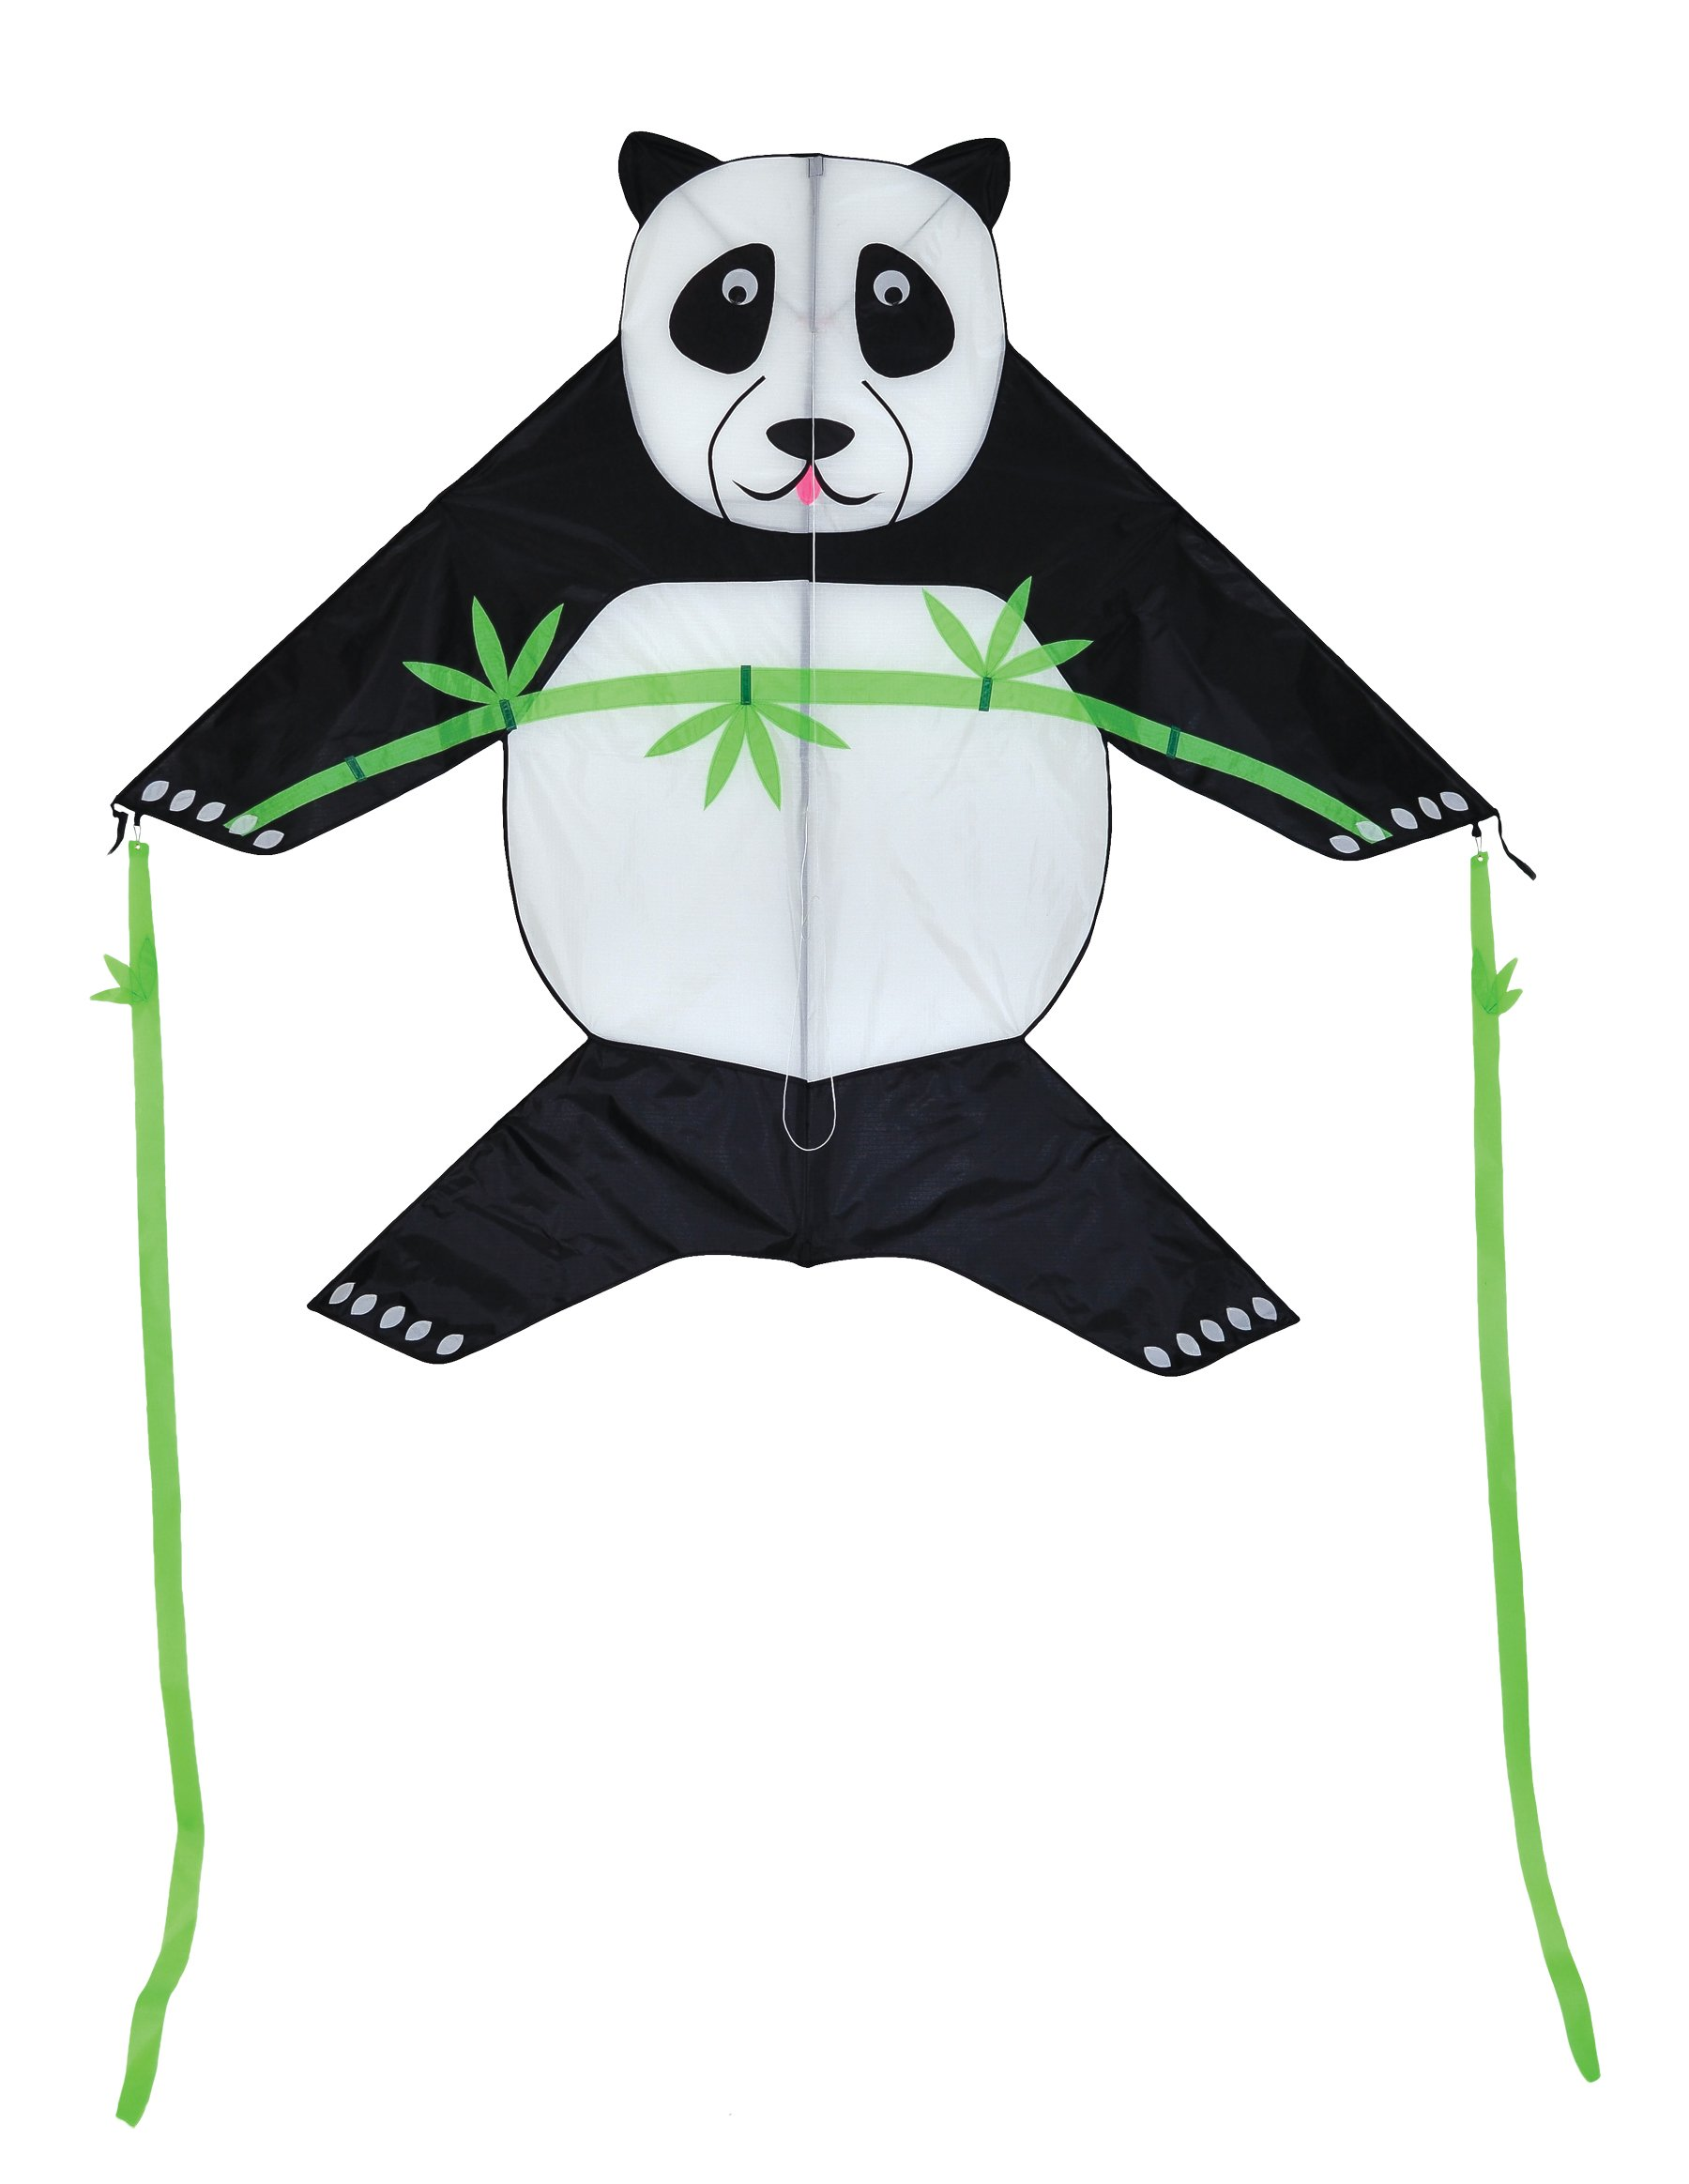 In the Breeze Bamboo Panda Kite